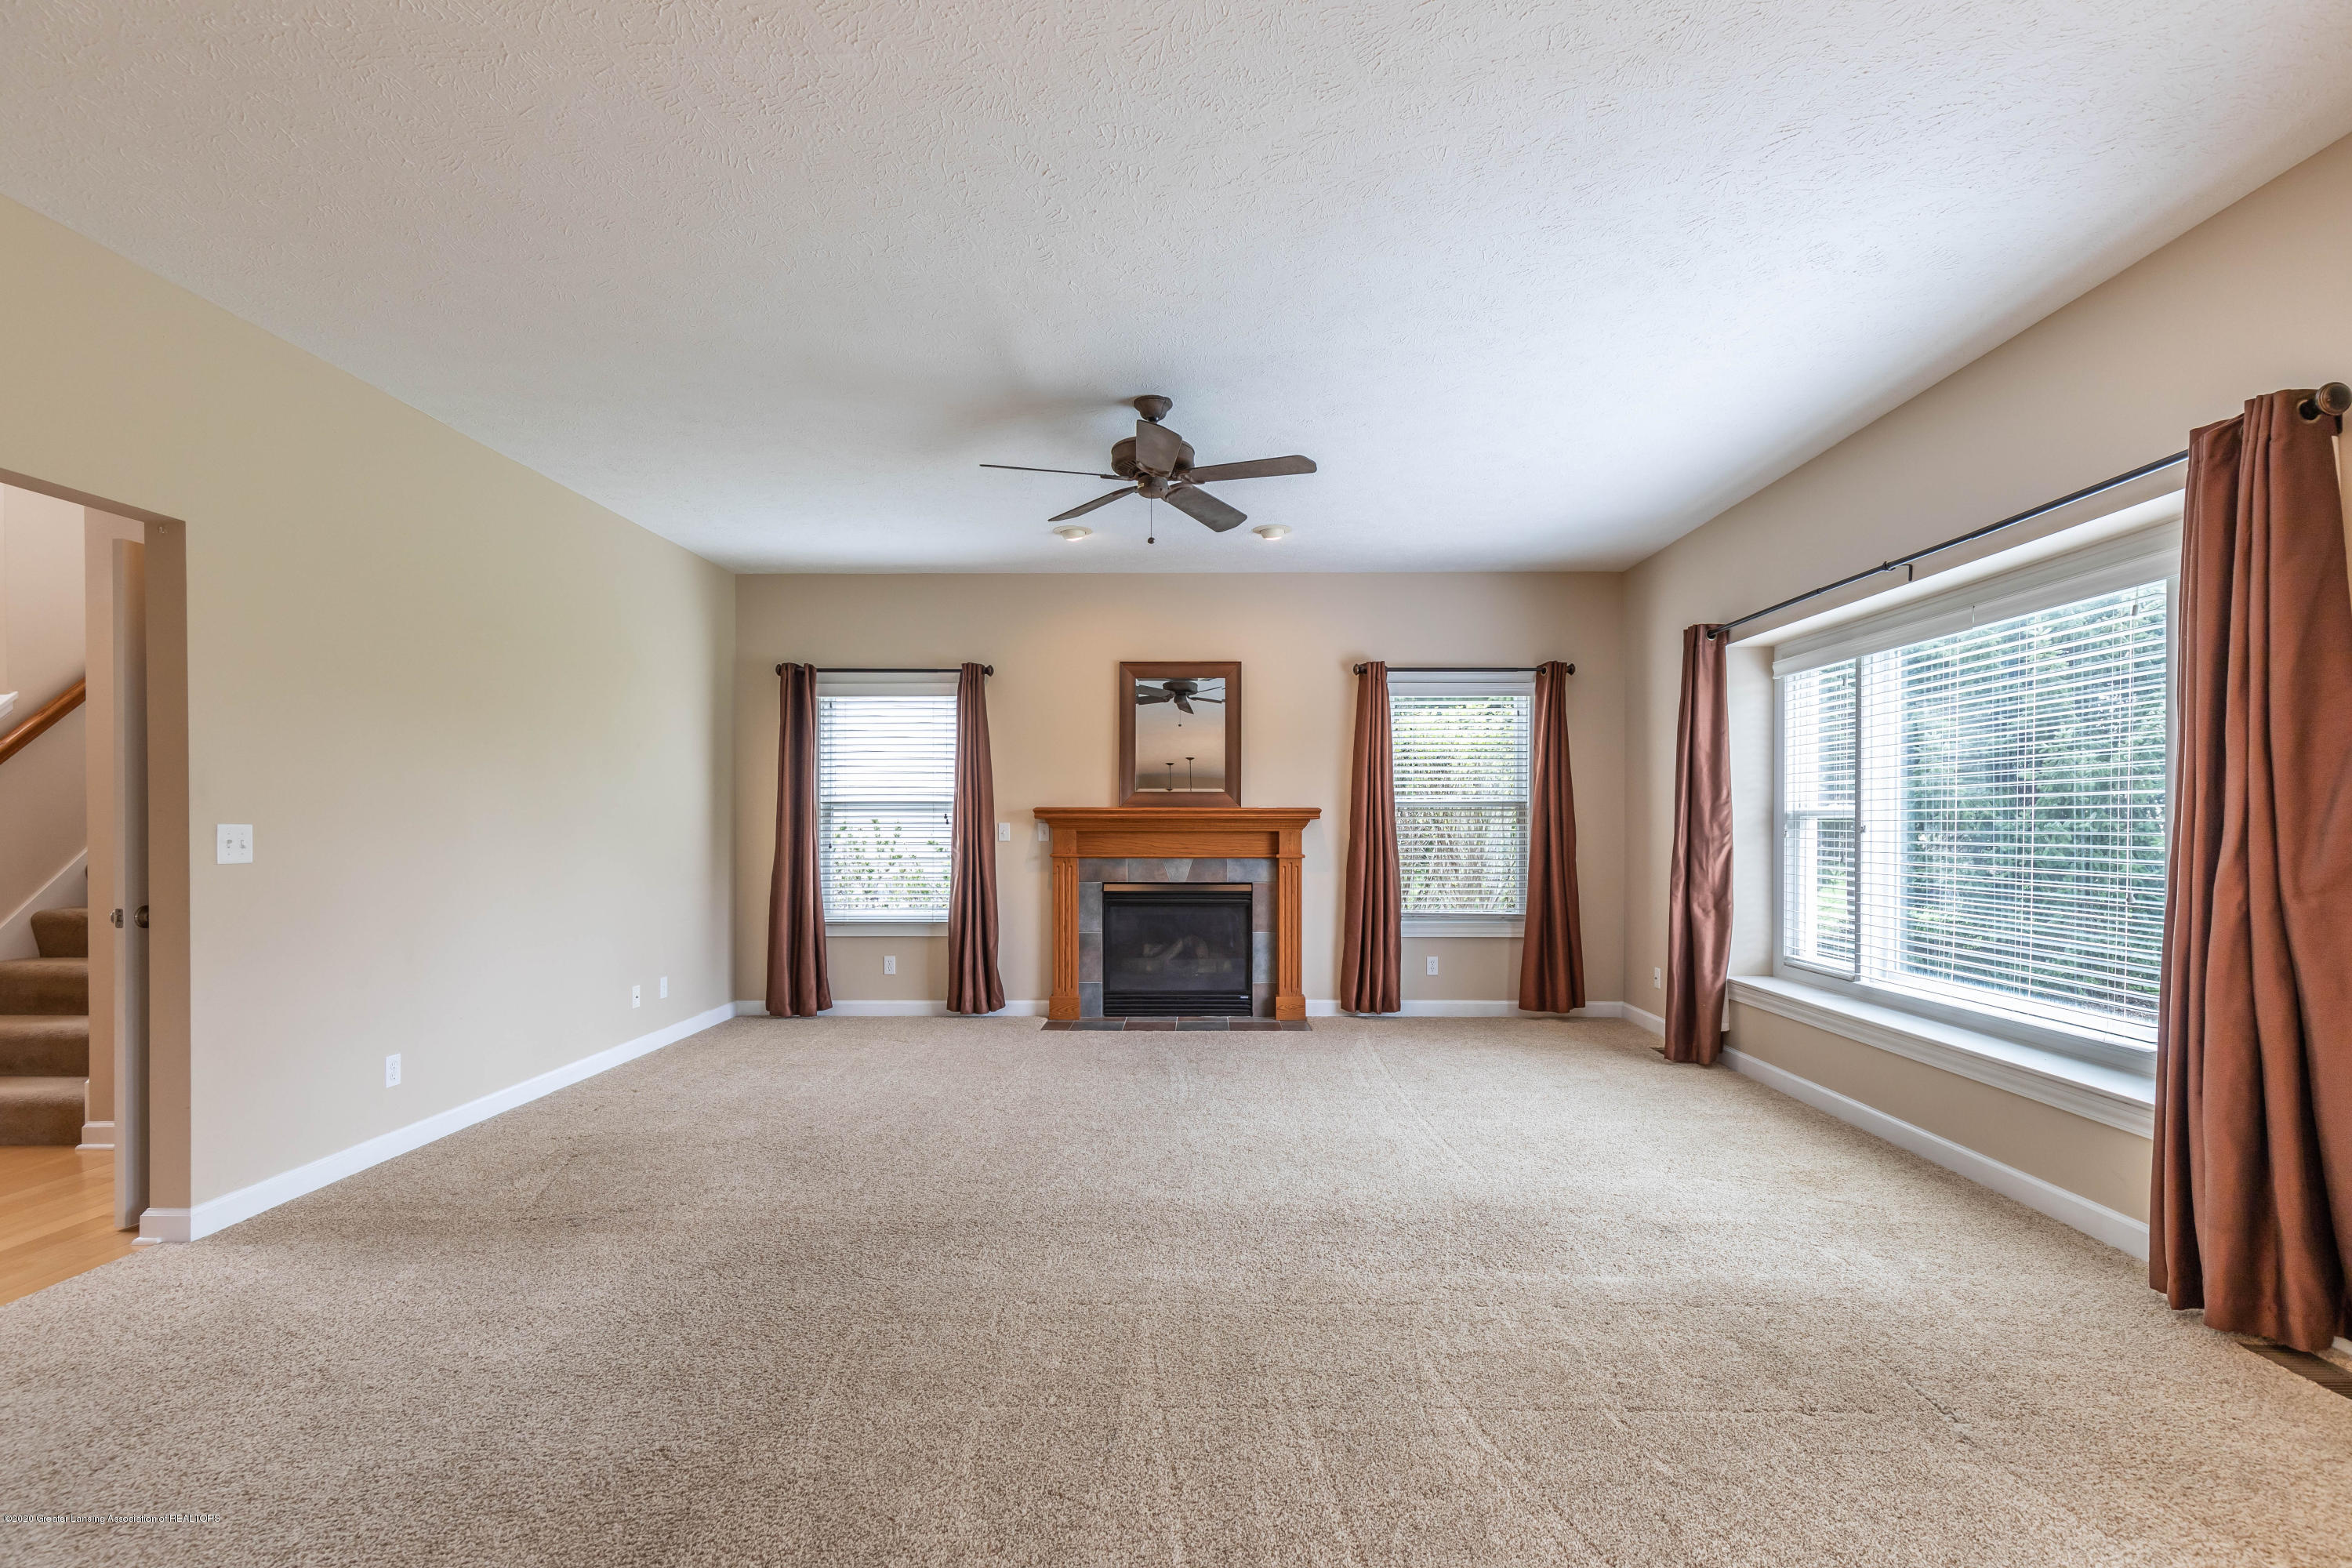 12810 Chartreuse Dr - chartreuseliving (1 of 1) - 6